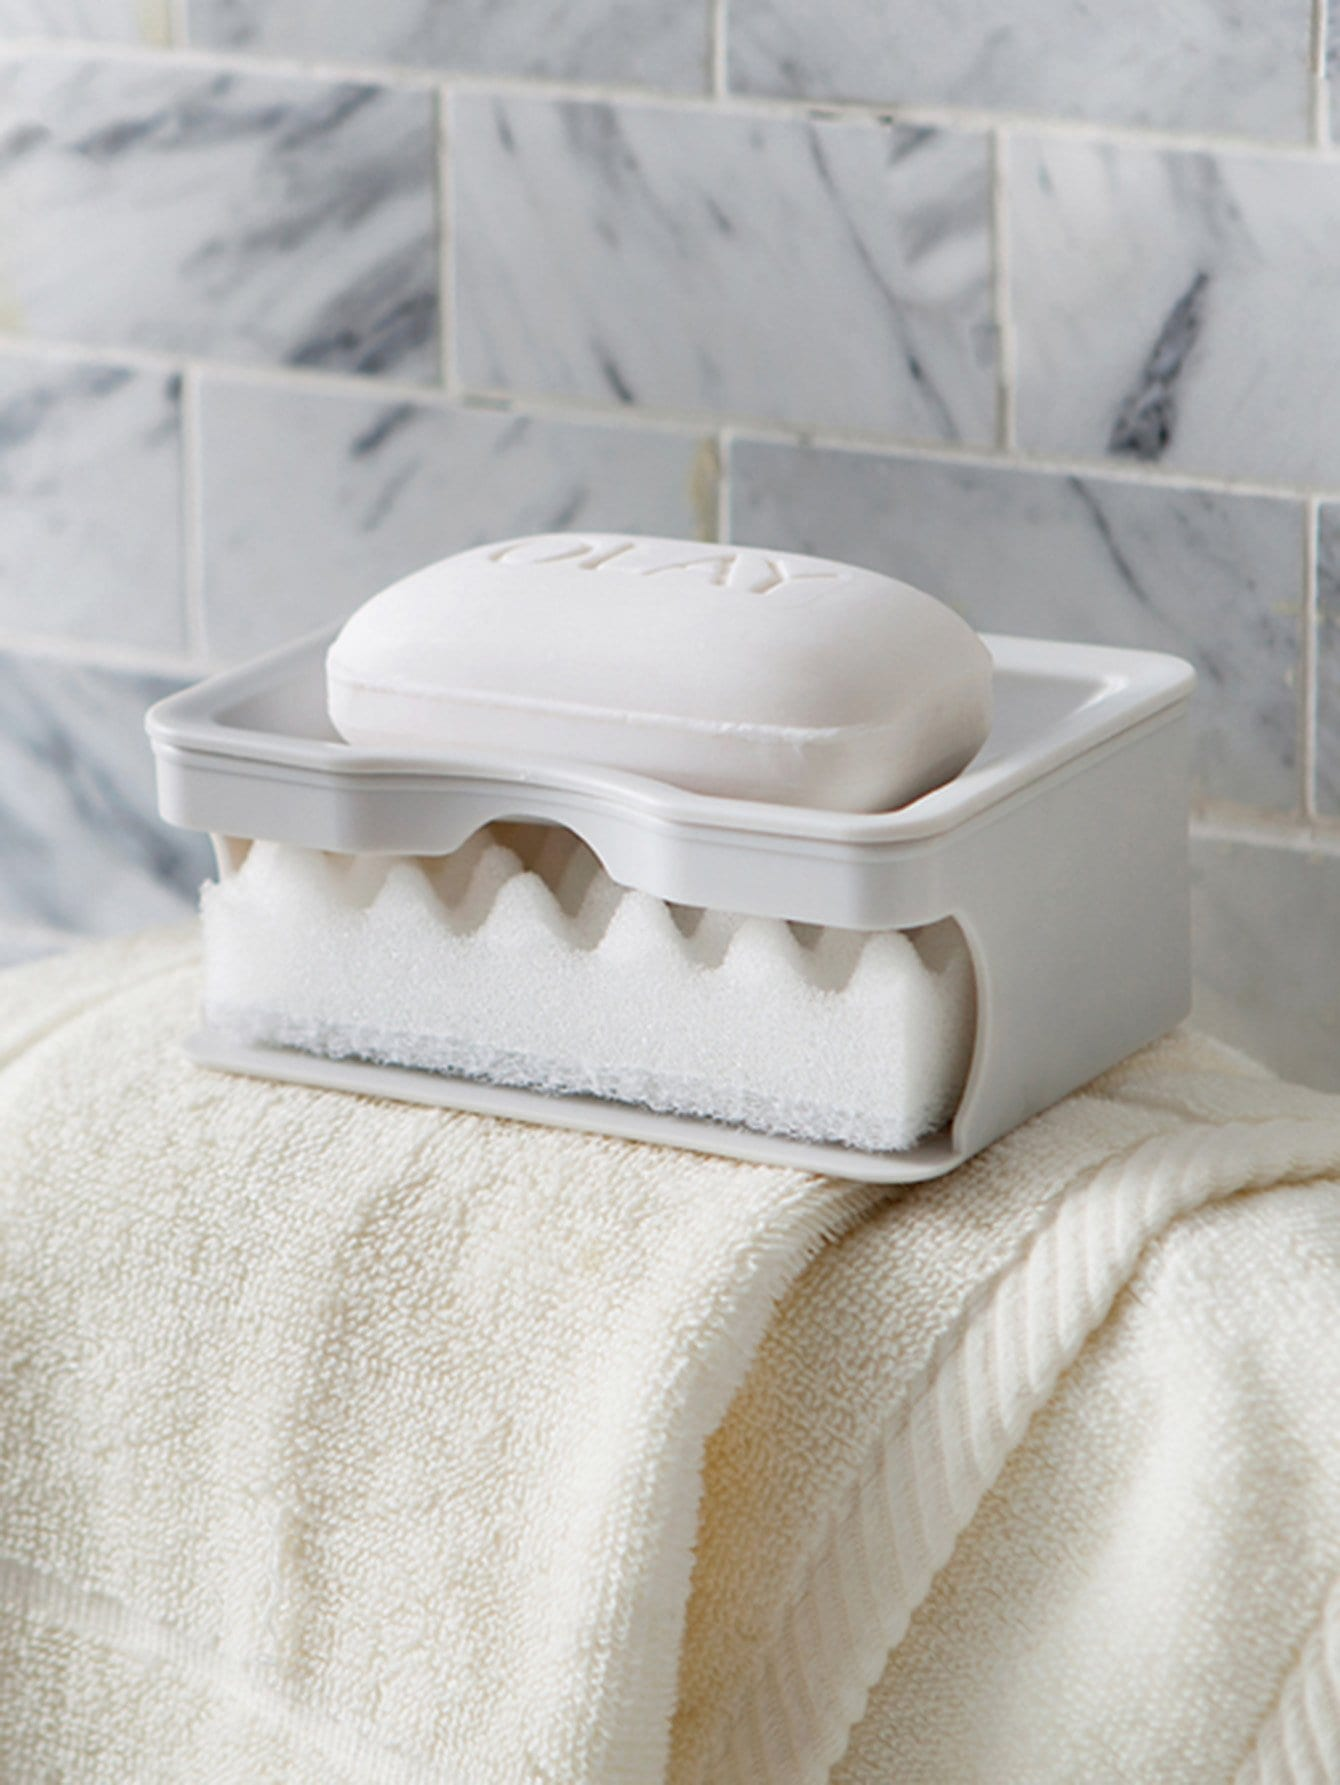 Draining Double Layered Soap Dish With Sponge draining soap dish with lid